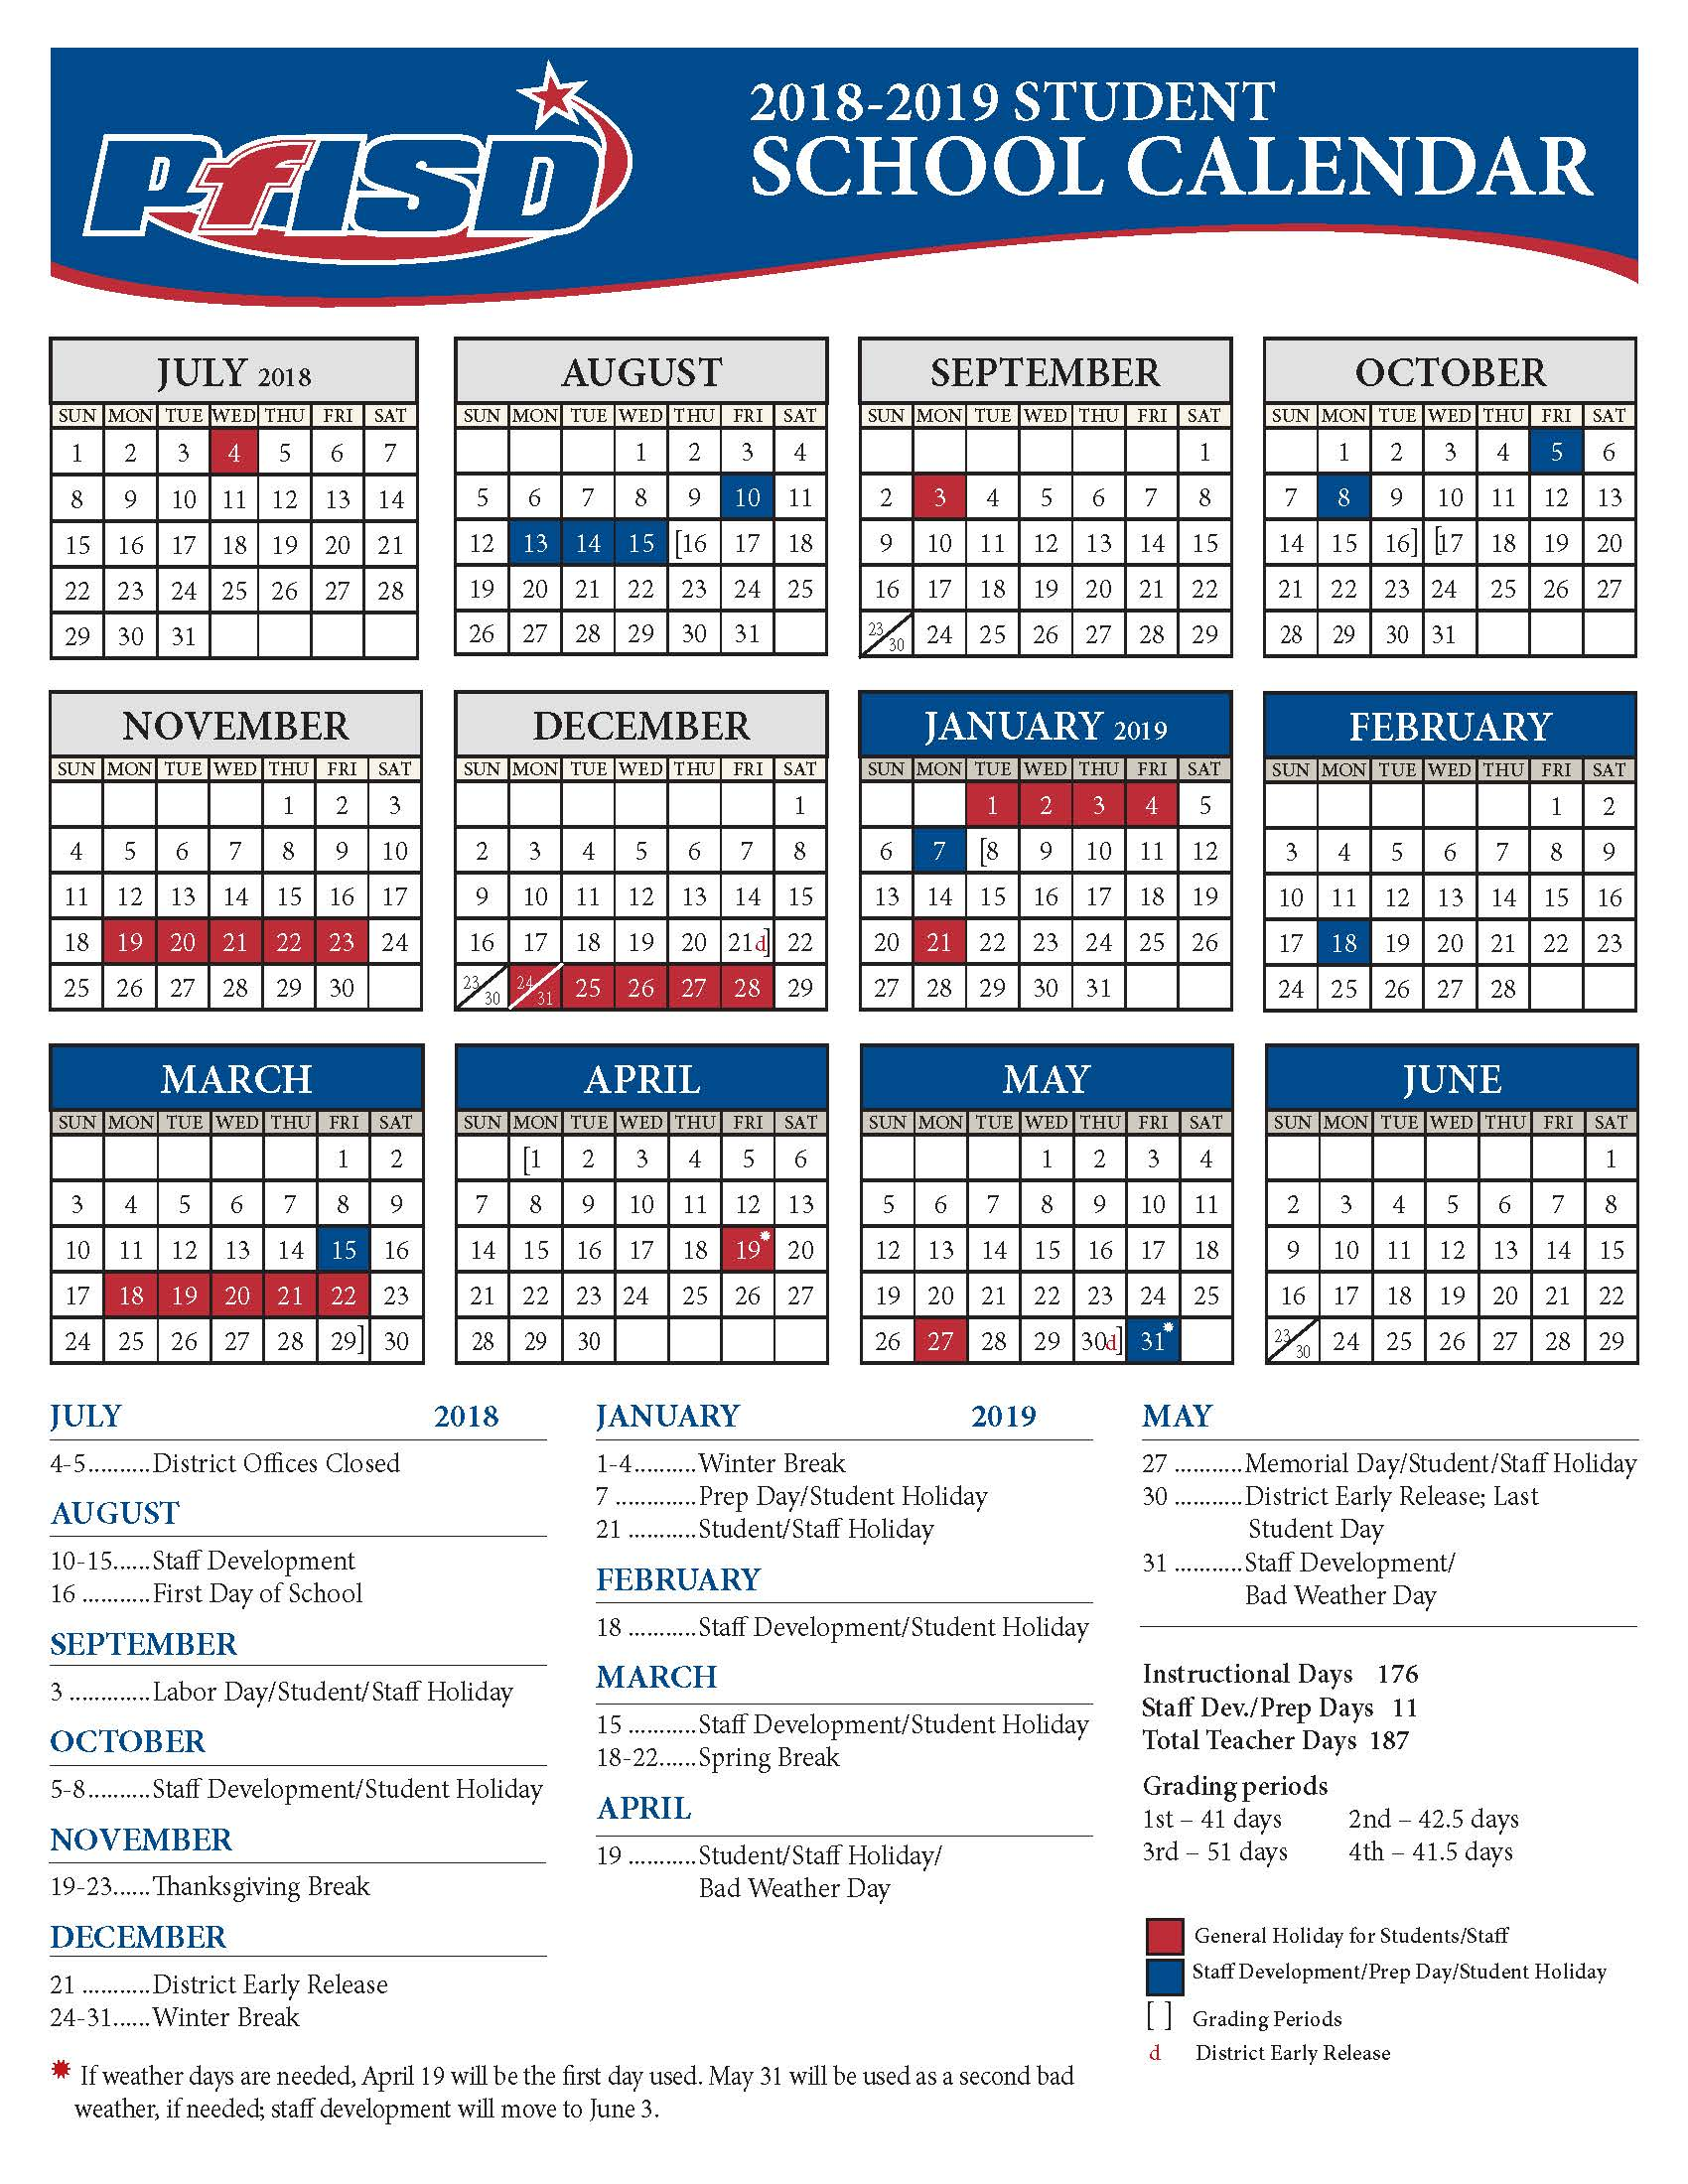 Wfisd December 2020 Calendar School Year Calendar / 2018 2019 District Calendar